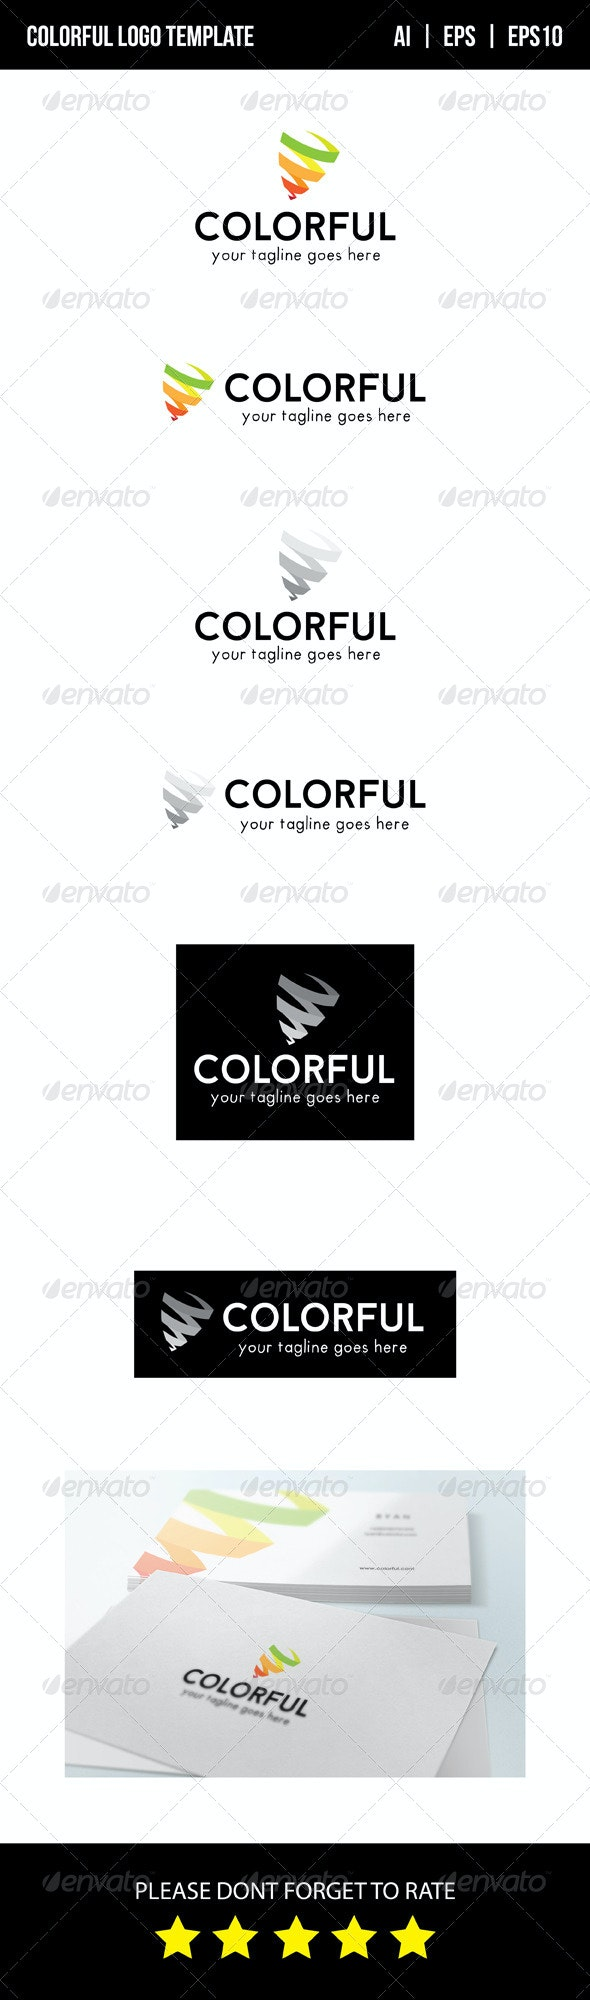 Colorful Logo Template - Vector Abstract